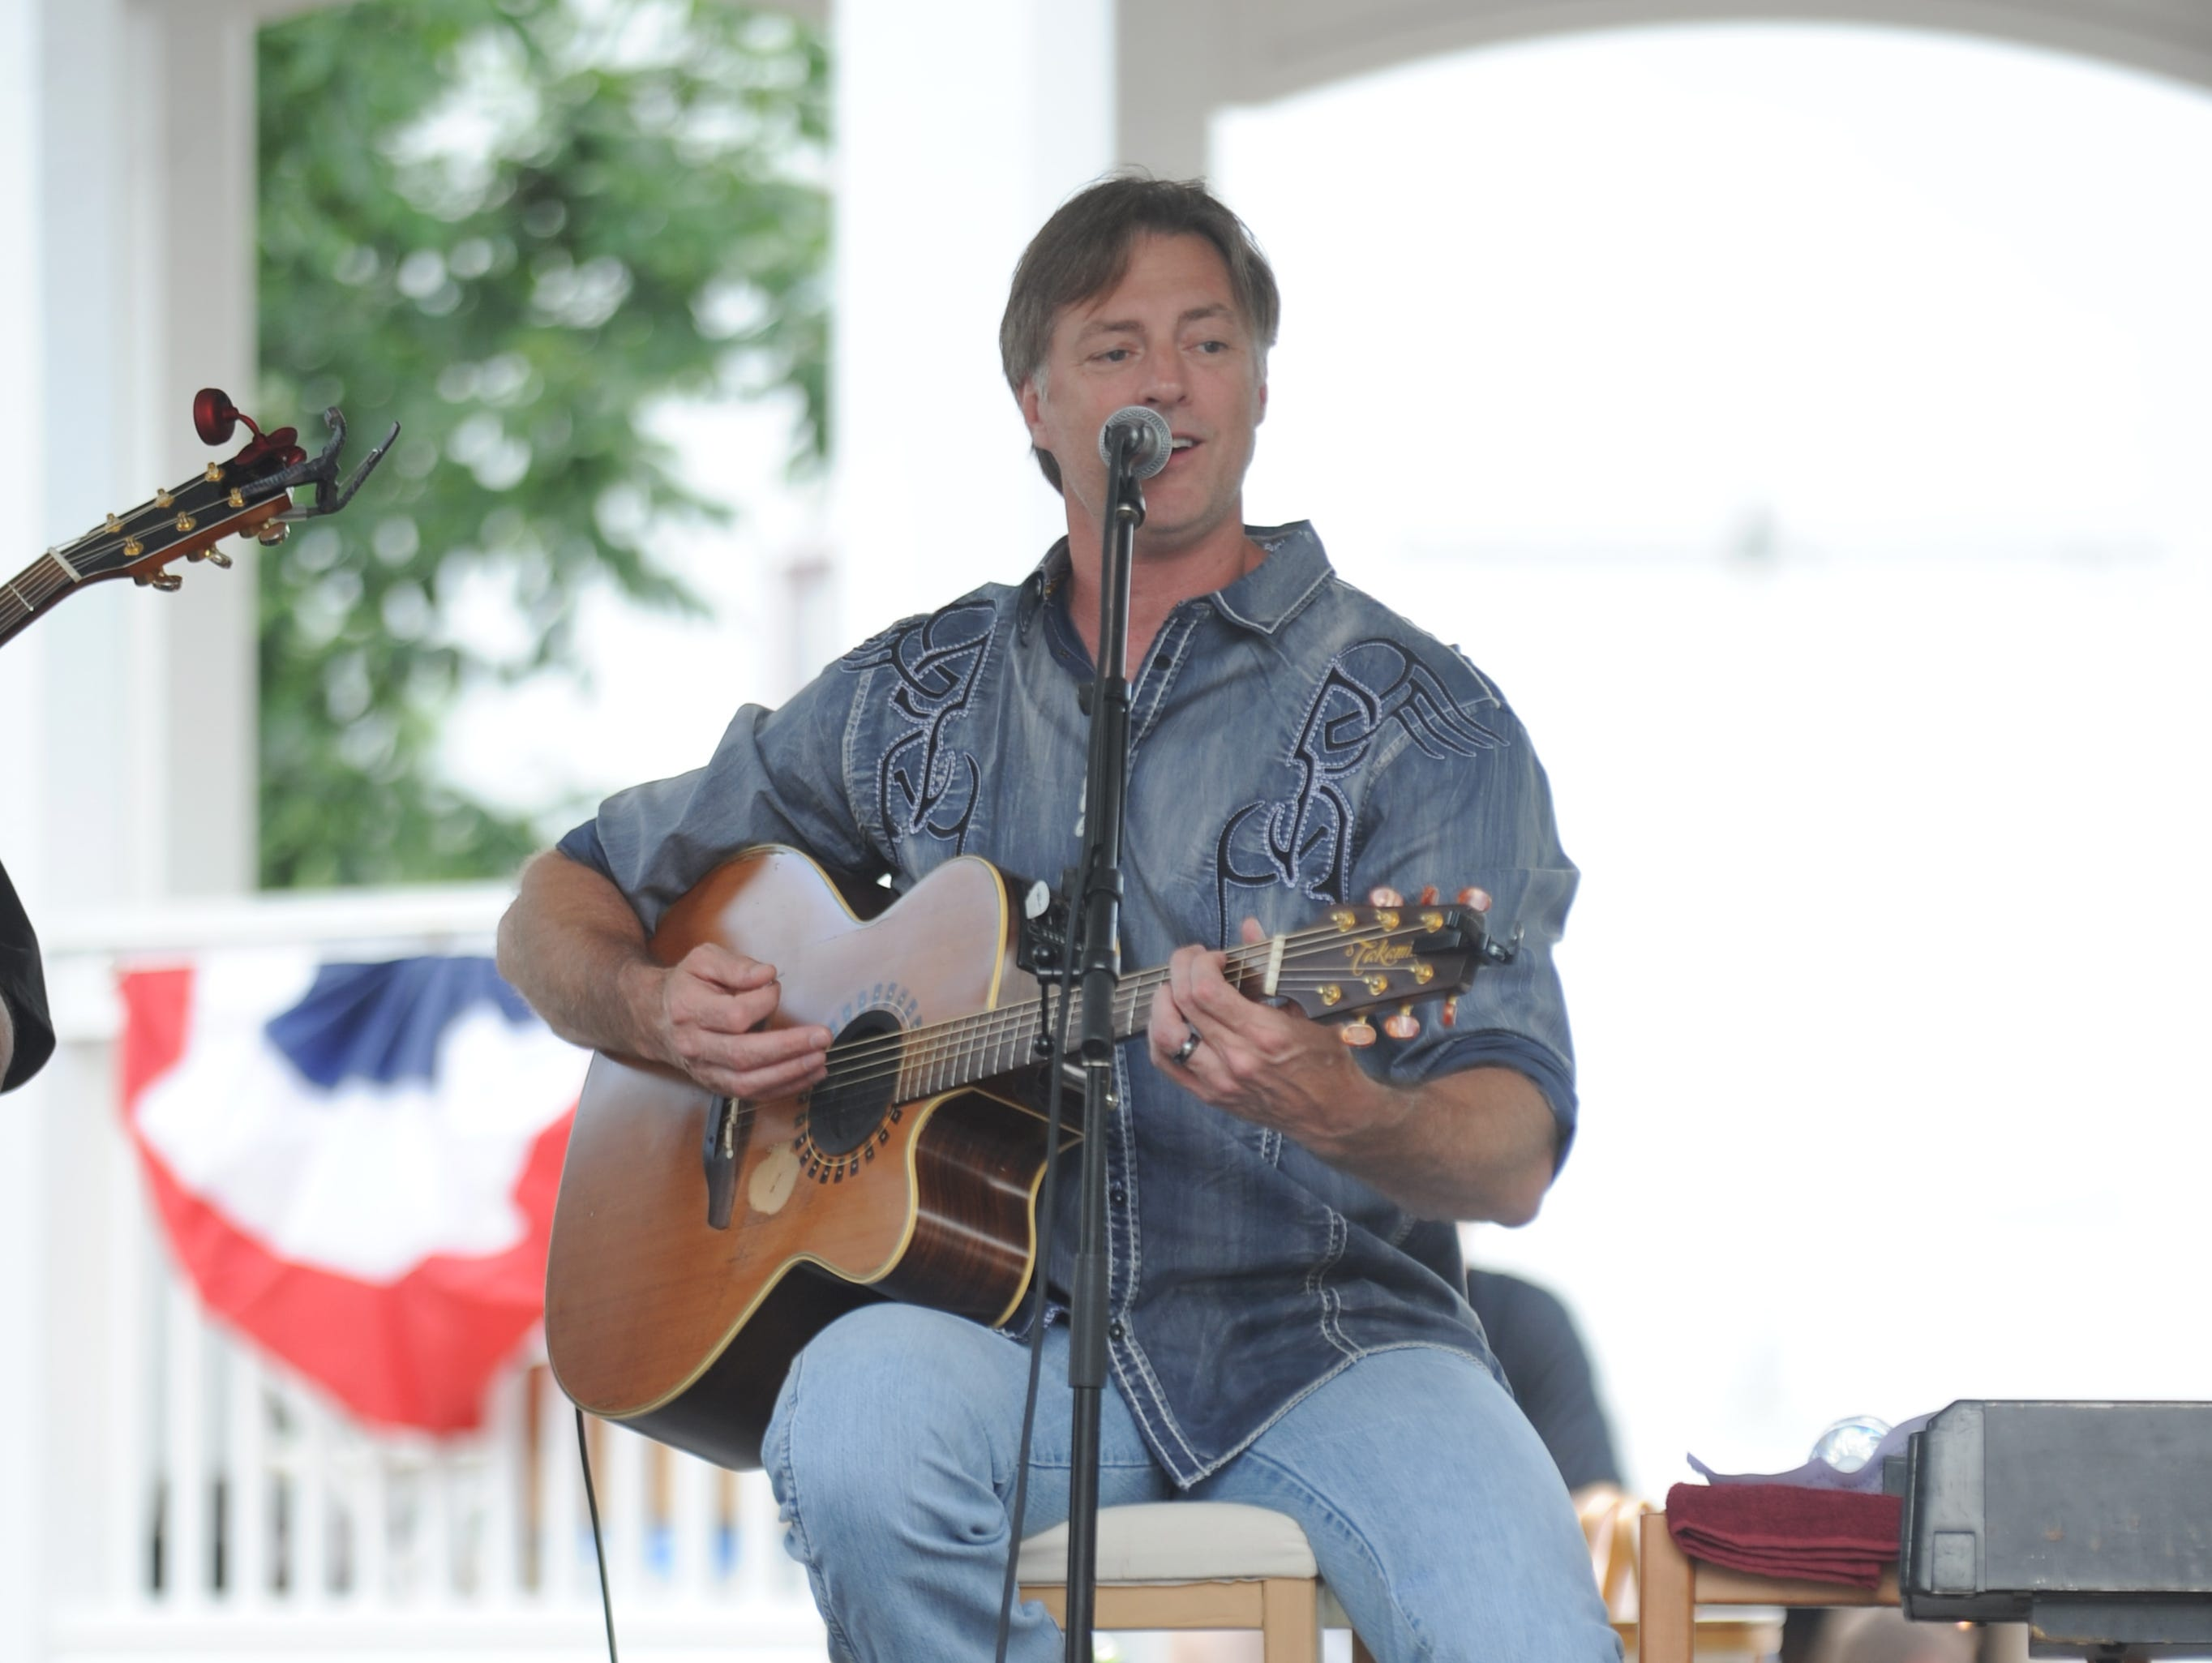 Country music star Darryl Worley performs at the Longaberger Homestead during Longaberger's Great American Picnic Celebration on Friday.